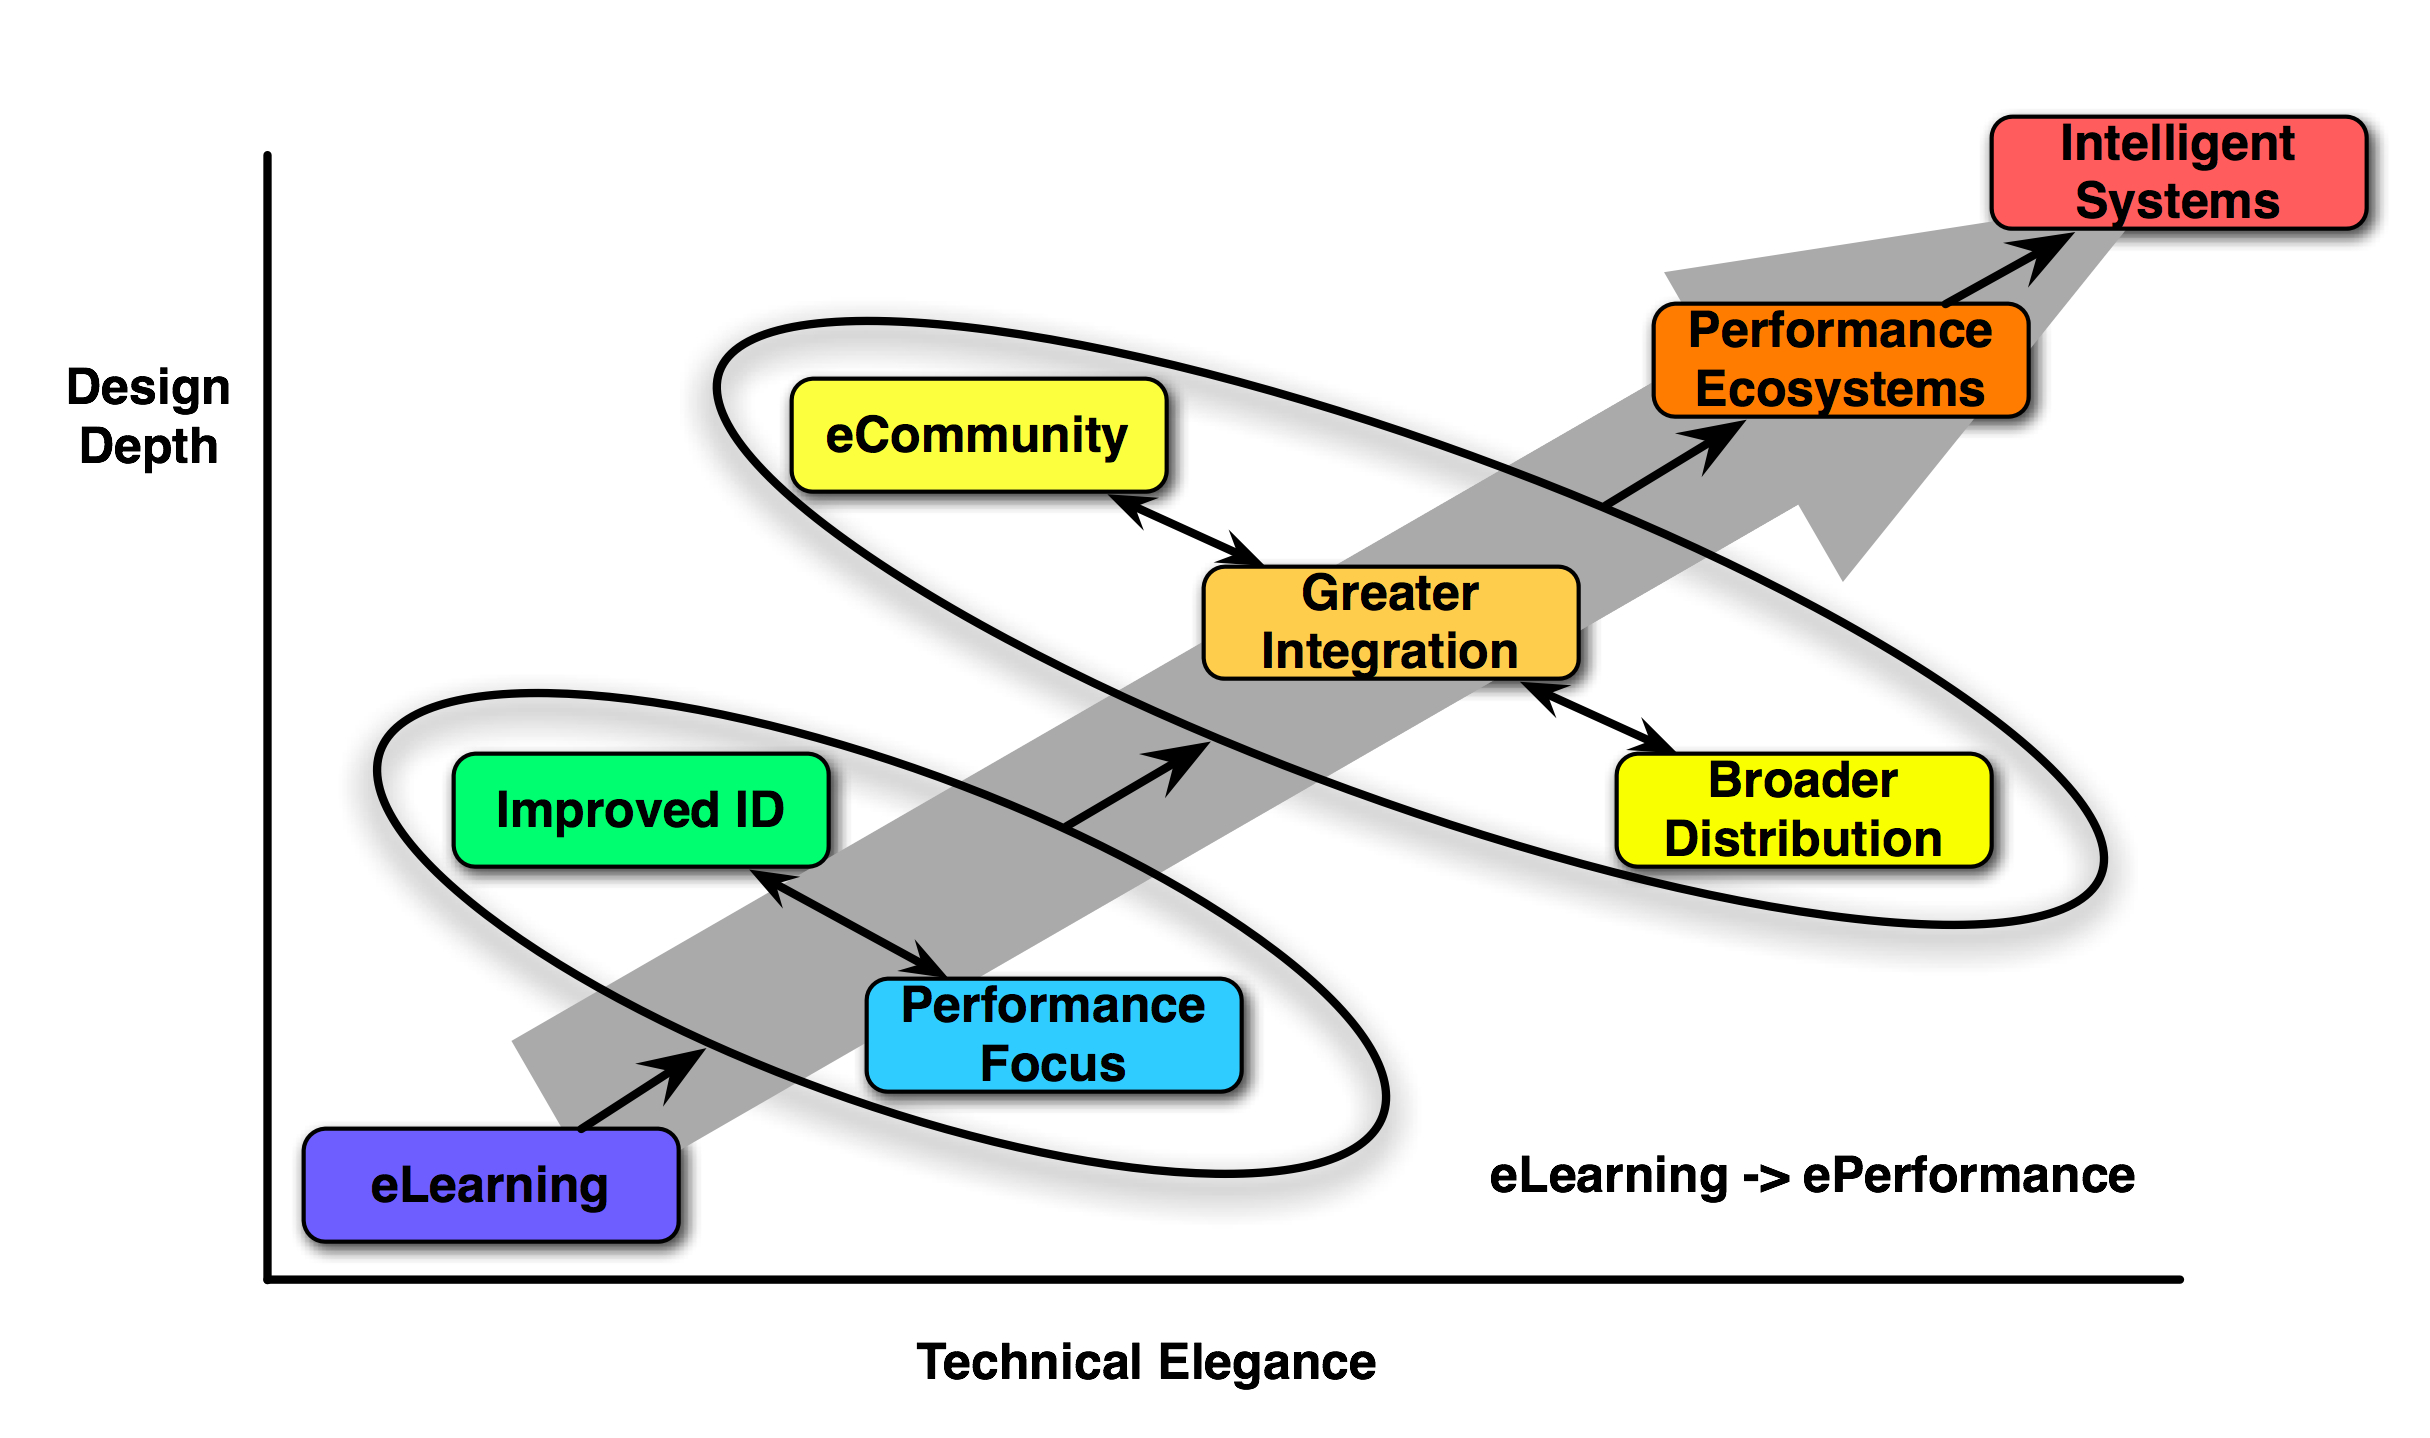 Performance Ecosystem